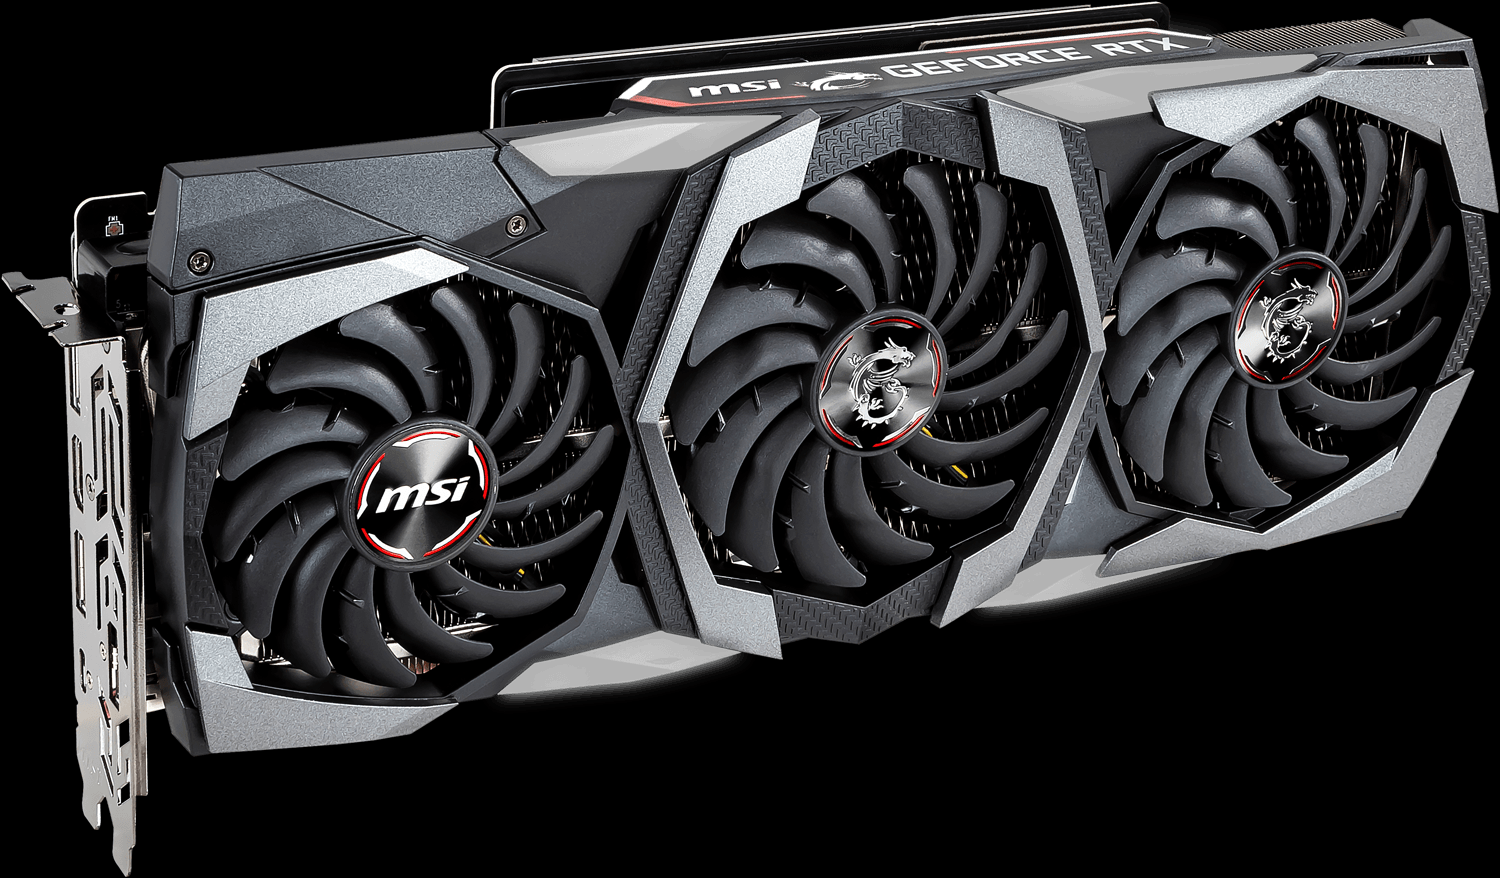 Photo of MSI Geforce RTX 2080 Gaming X TRIO video card in comprehensive review